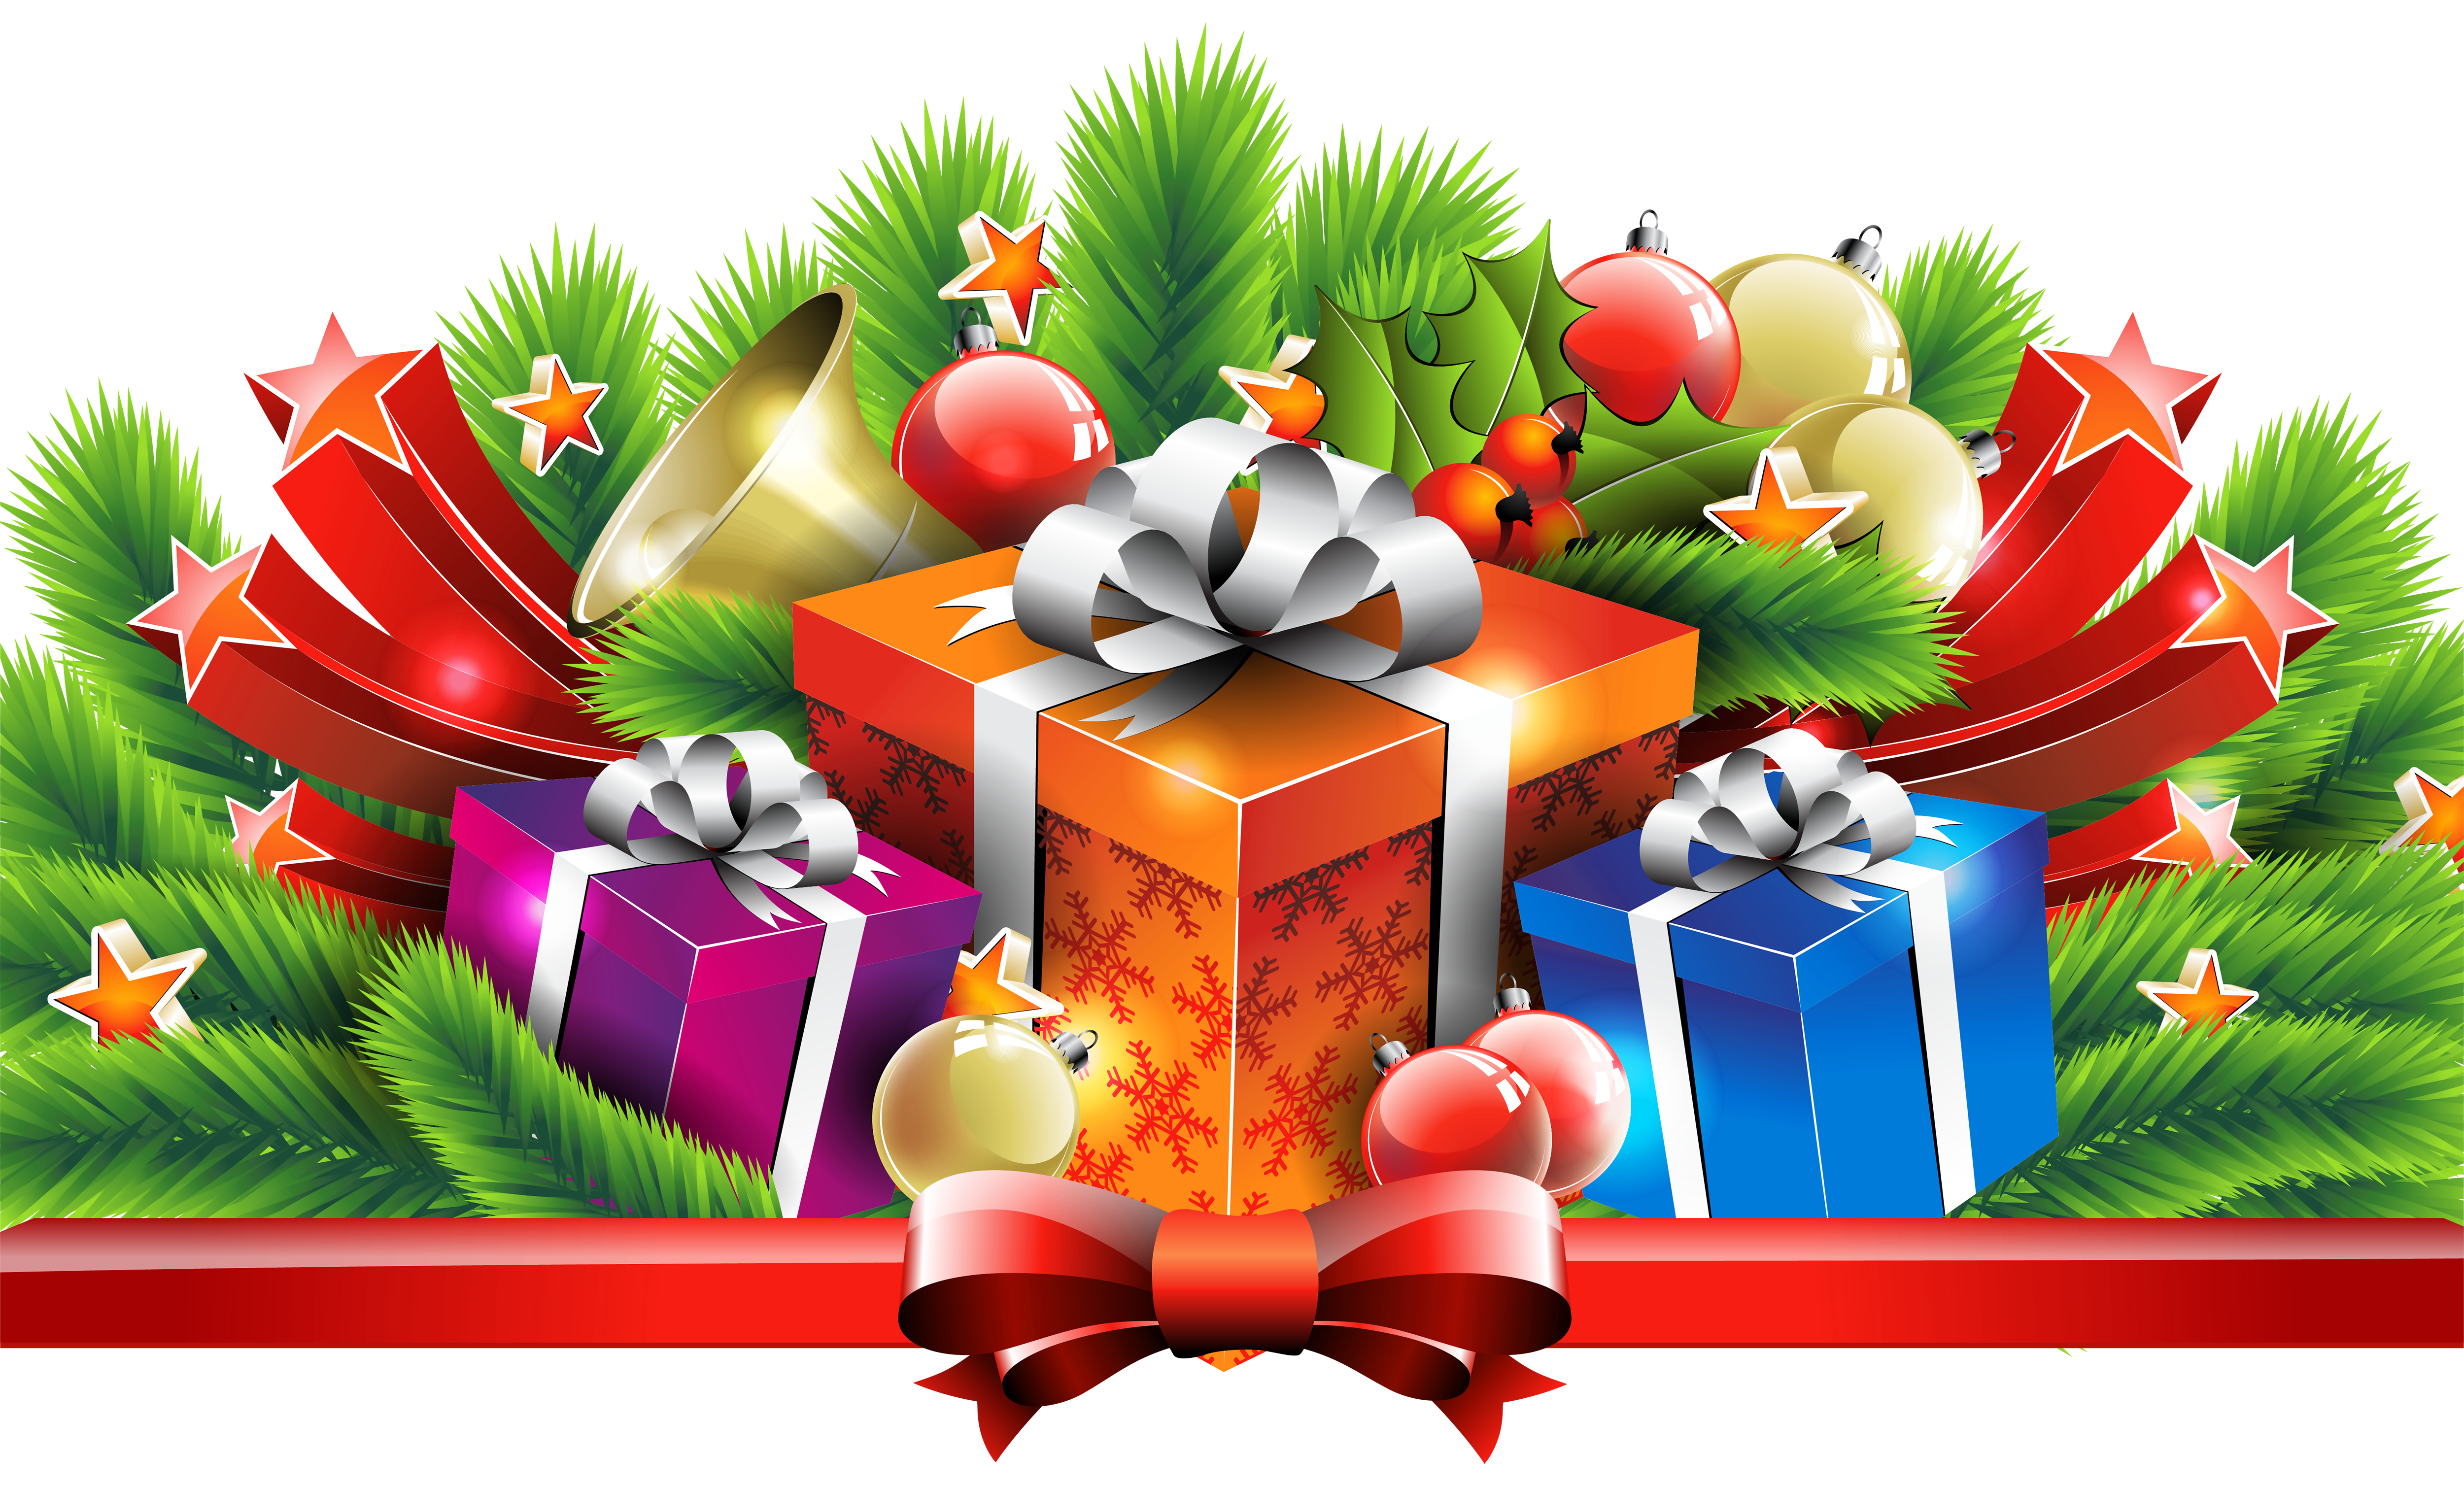 Gift clipart stacked present. Christmas presents interesting ideas